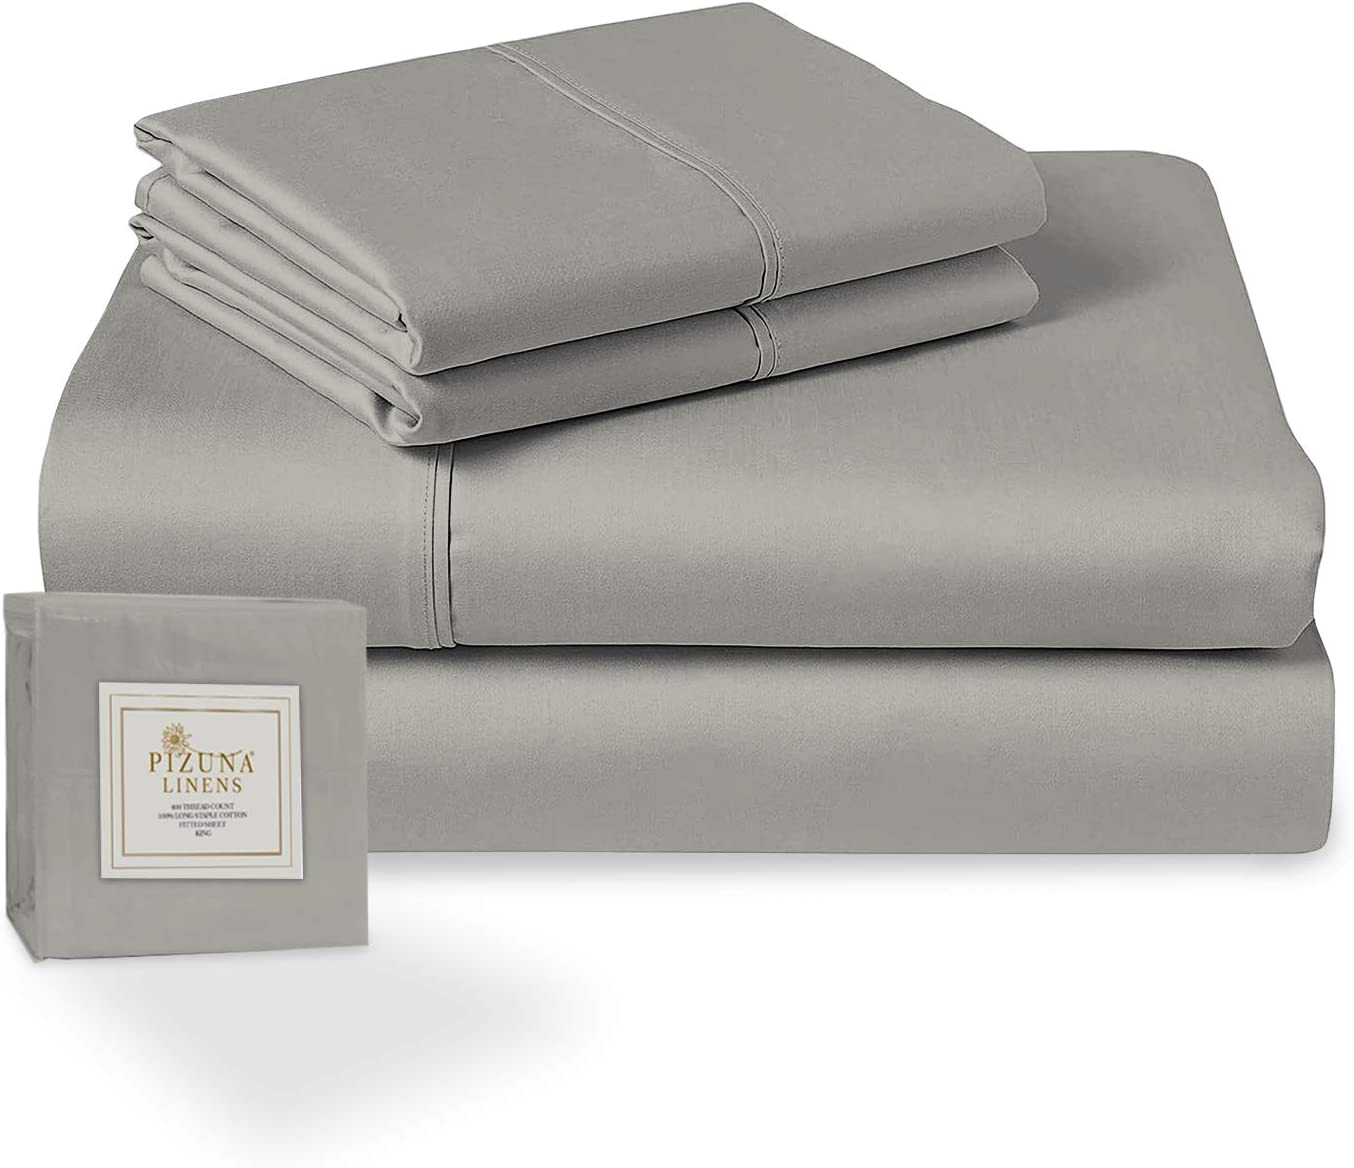 Pizuna 400 Thread Count Queen Cotton Sheets Set Grey, 100% Long Staple Cotton Soft Sateen Bed Sheets Deep Pocket fit Upto 15 inch (100 Cotton Sheets Queen Gray)